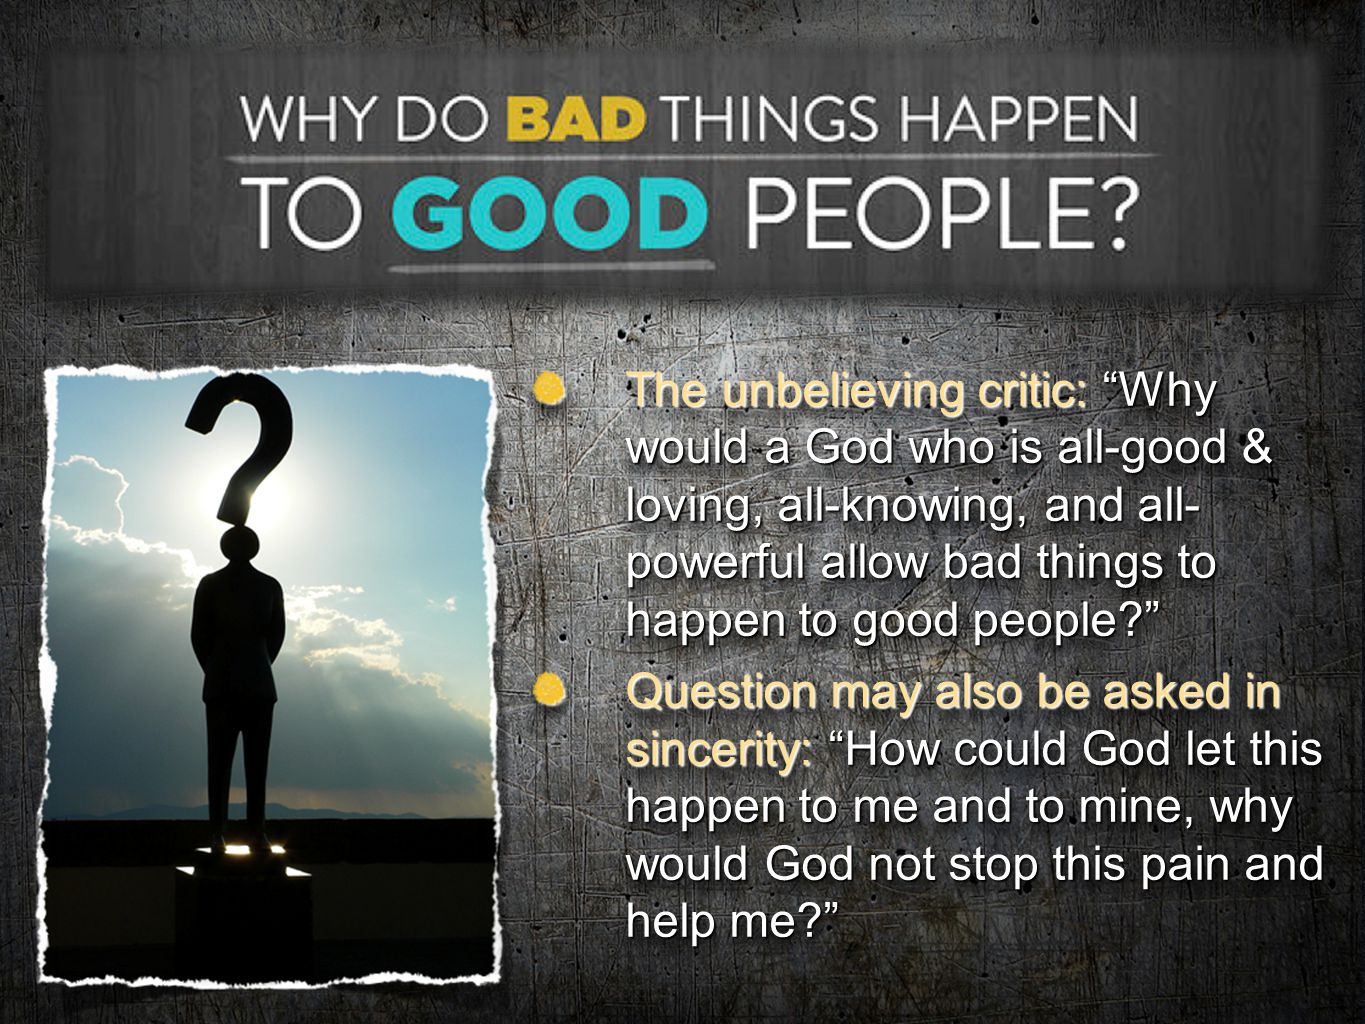 "The unbelieving critic: ""Why would a God who is all-good & loving, all-knowing, and all- powerful allow bad things to happen to good people?"" Question"